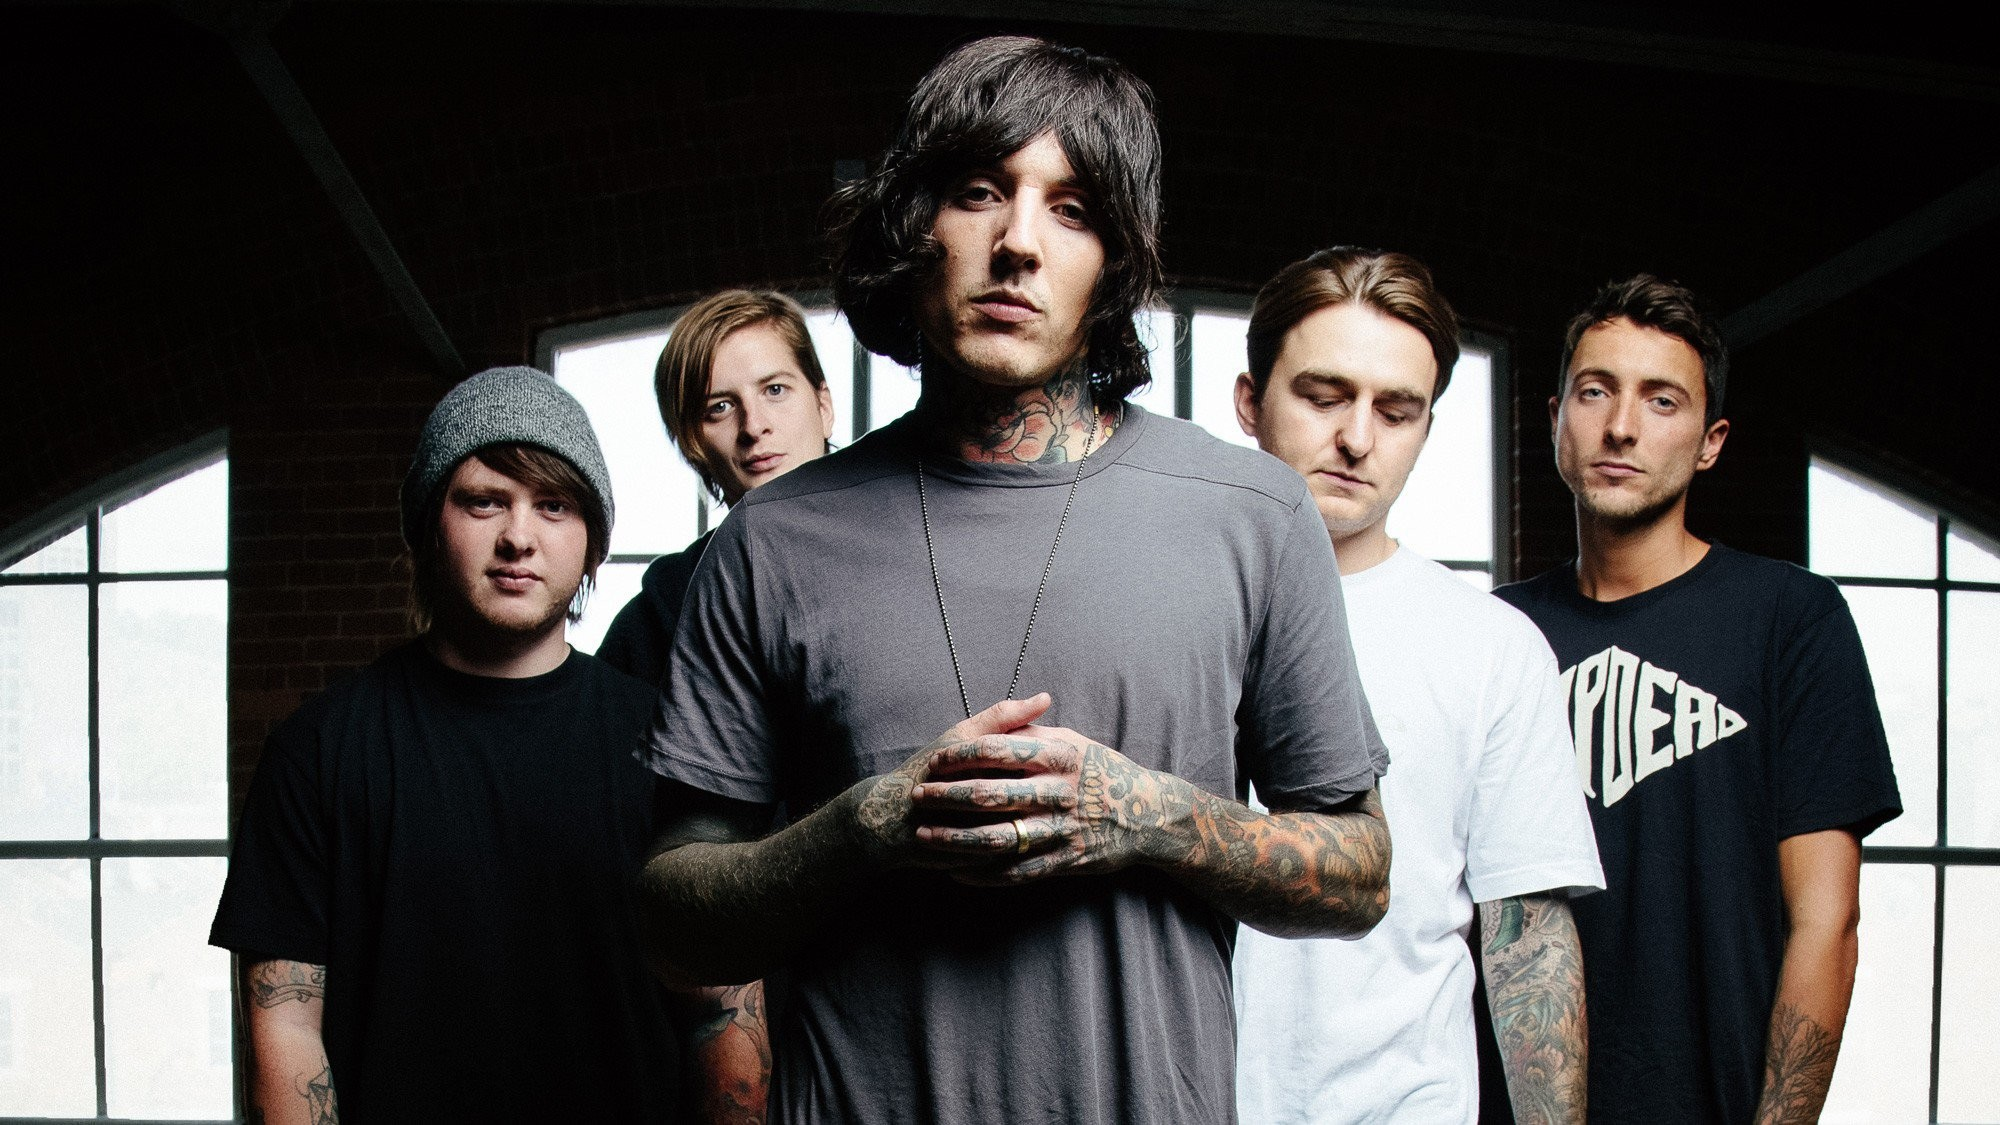 2000x1125 HD Bring Me The Horizon Wallpapers | Download Free - 985509